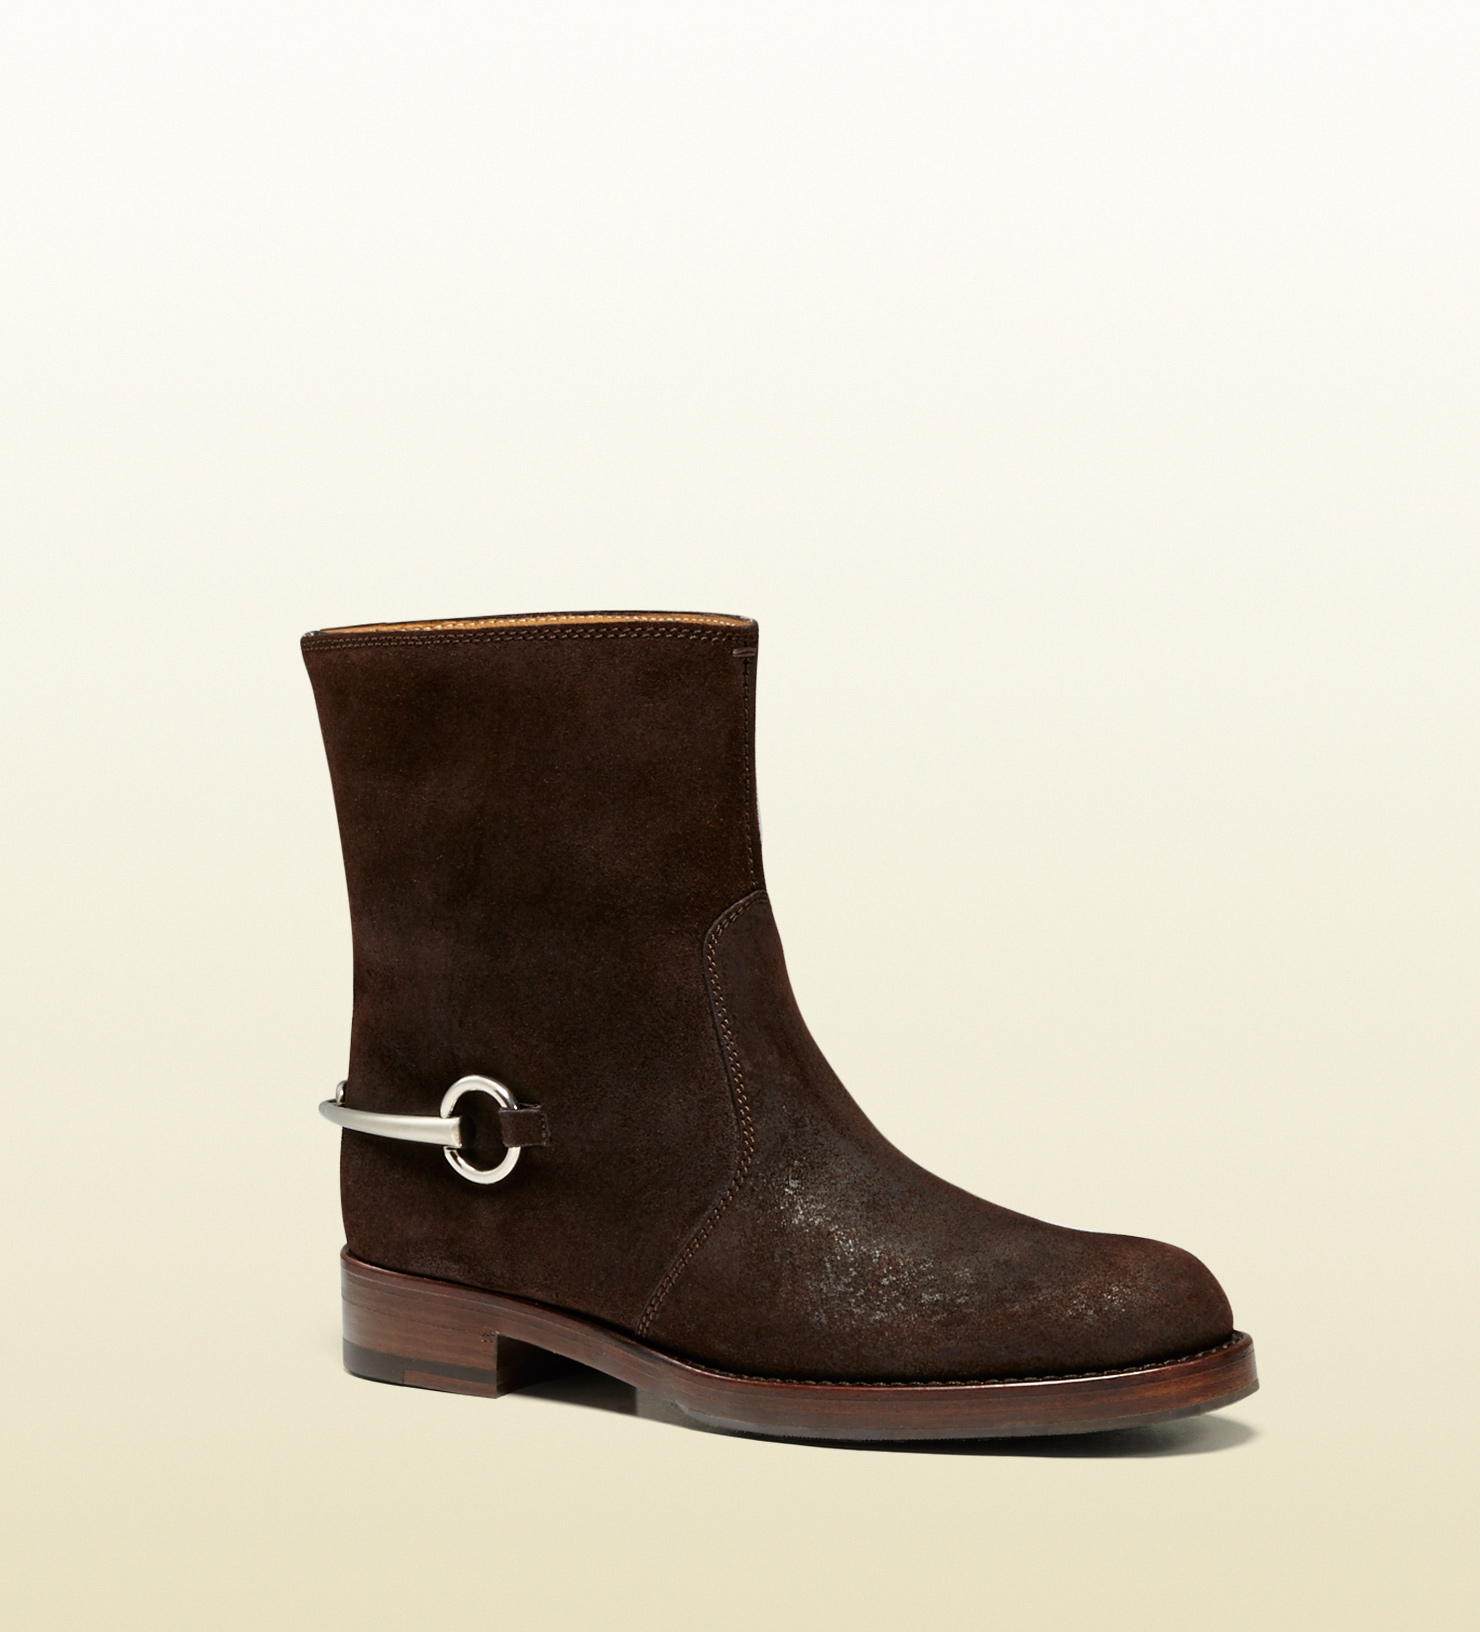 gucci suede horsebit ankle boot in brown for lyst